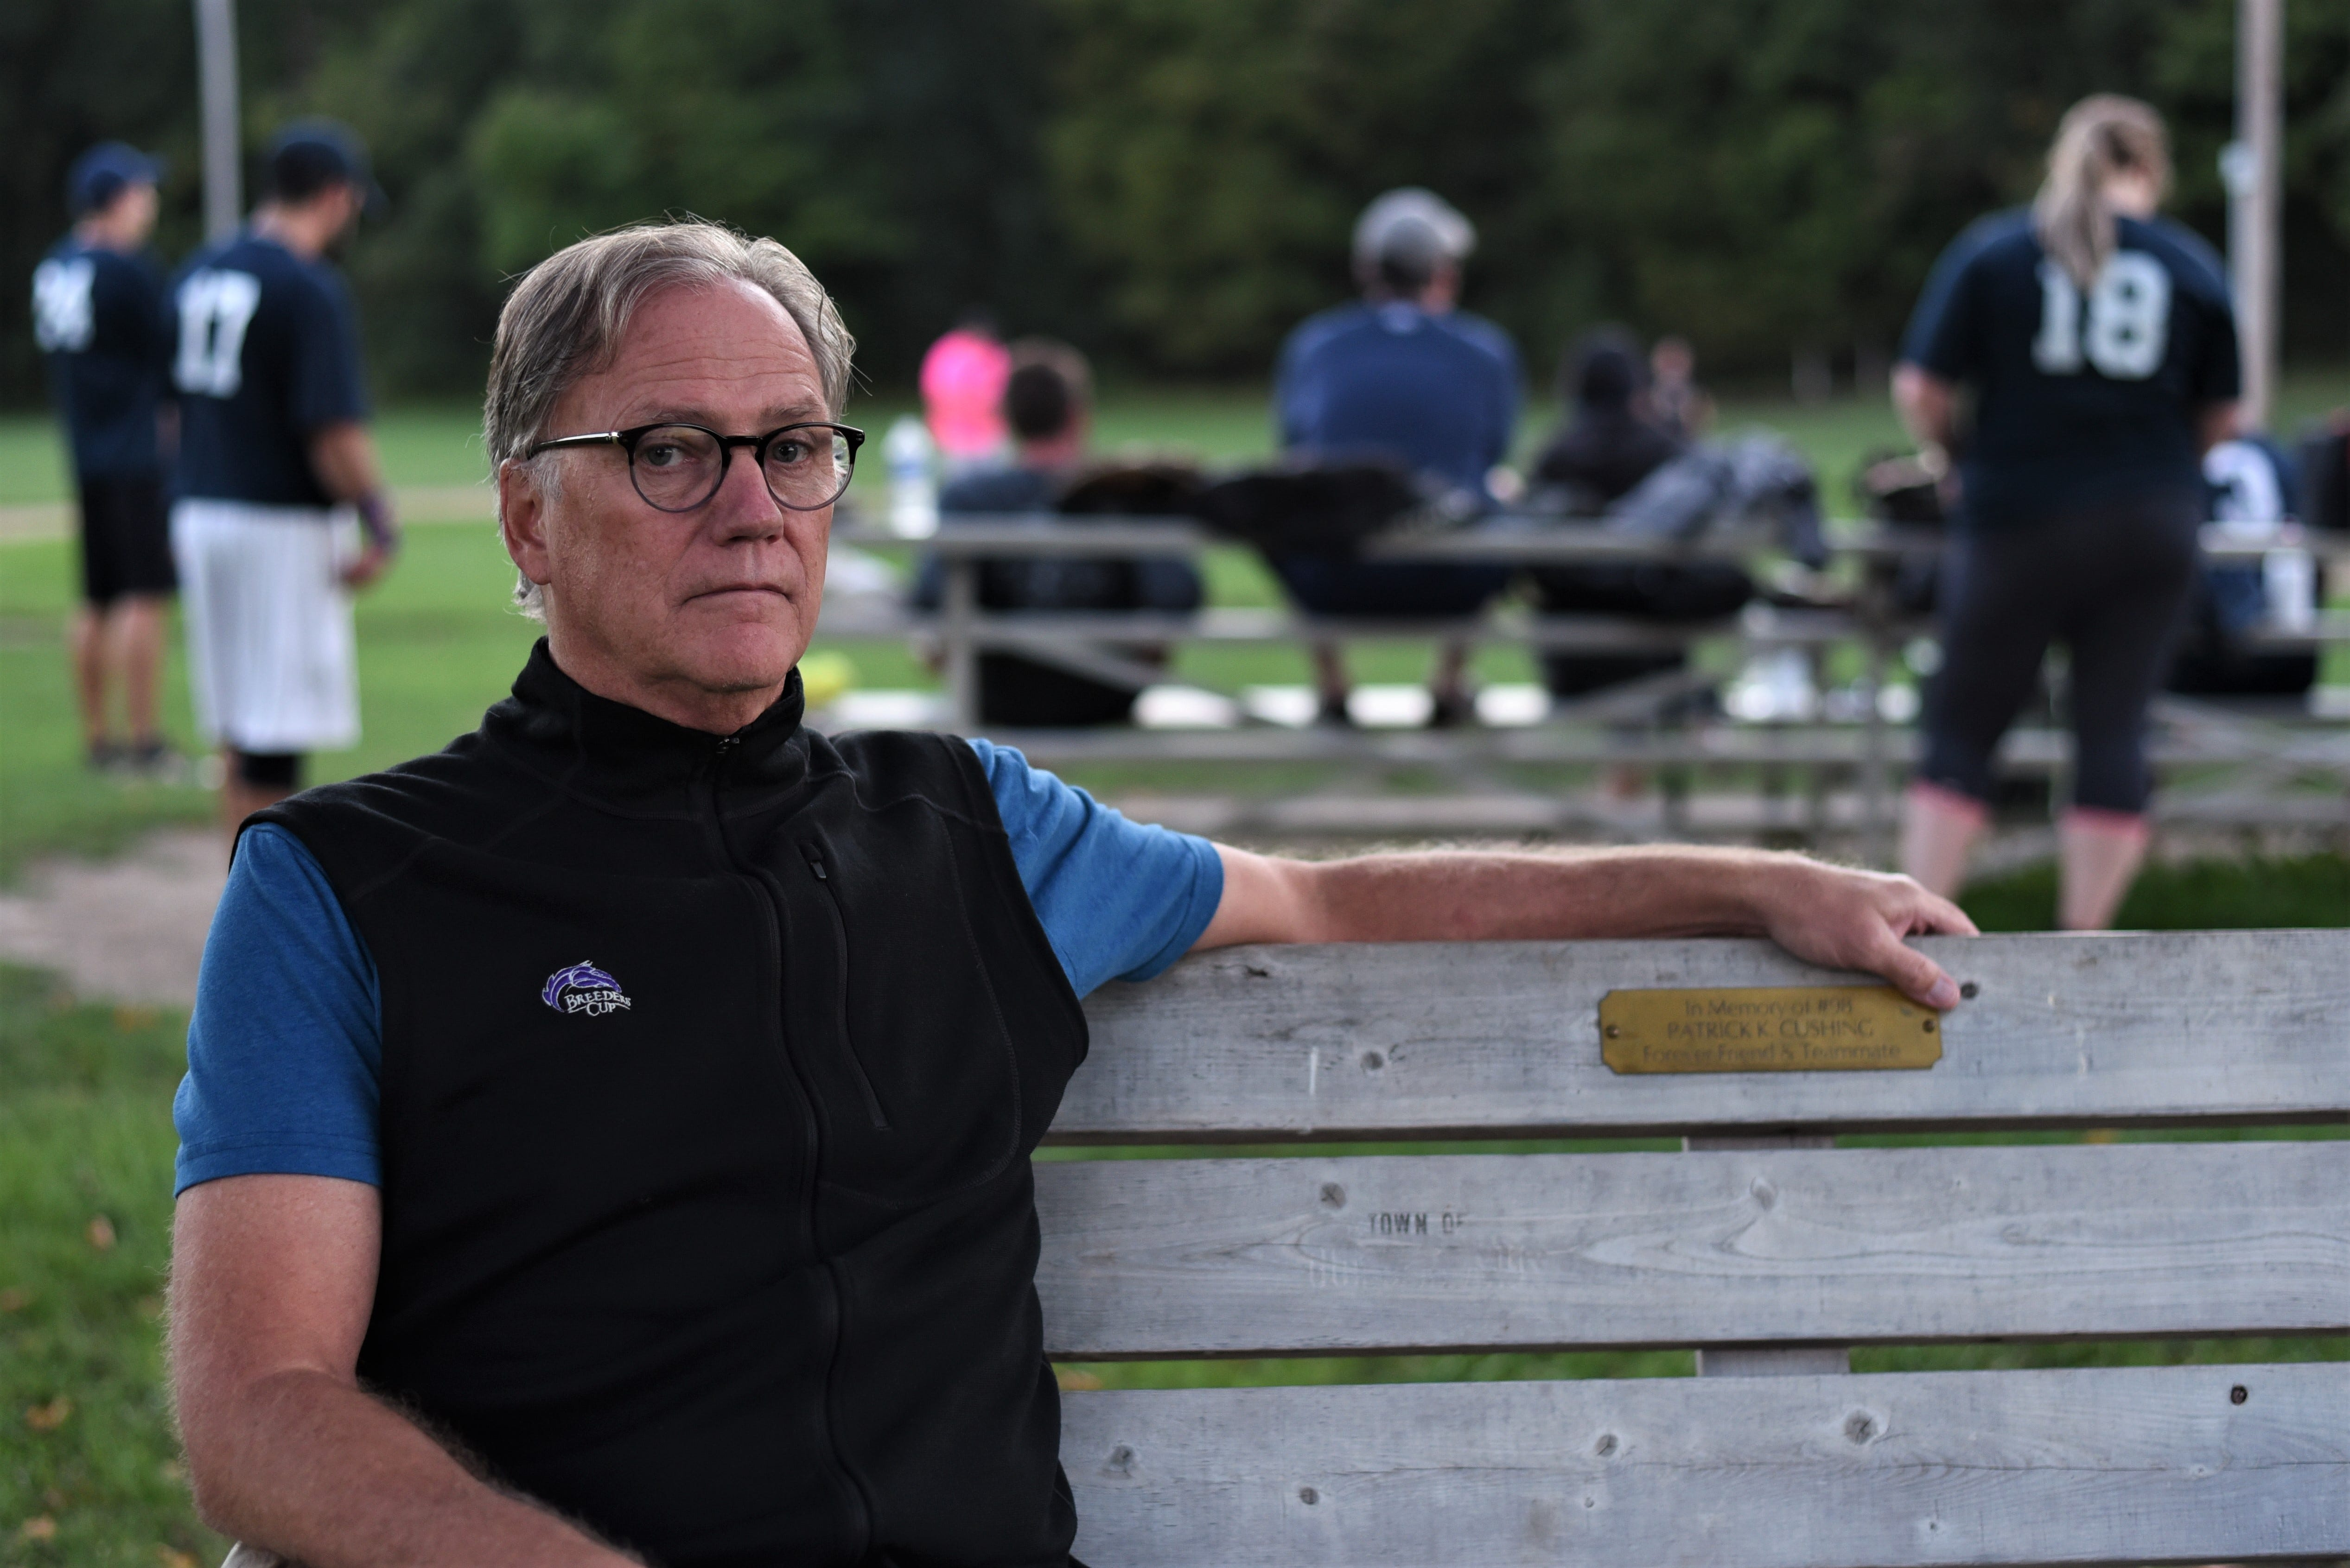 Kevin Cushing sits at a bench honoring his late son, Patrick Cushing, at Nott Road Park in Guilderland, New York on Monday, Sept. 16, 2019. The bench is right next to third base on the field where Patrick Cushing played in his last game before his death on Oct. 6, 2018.